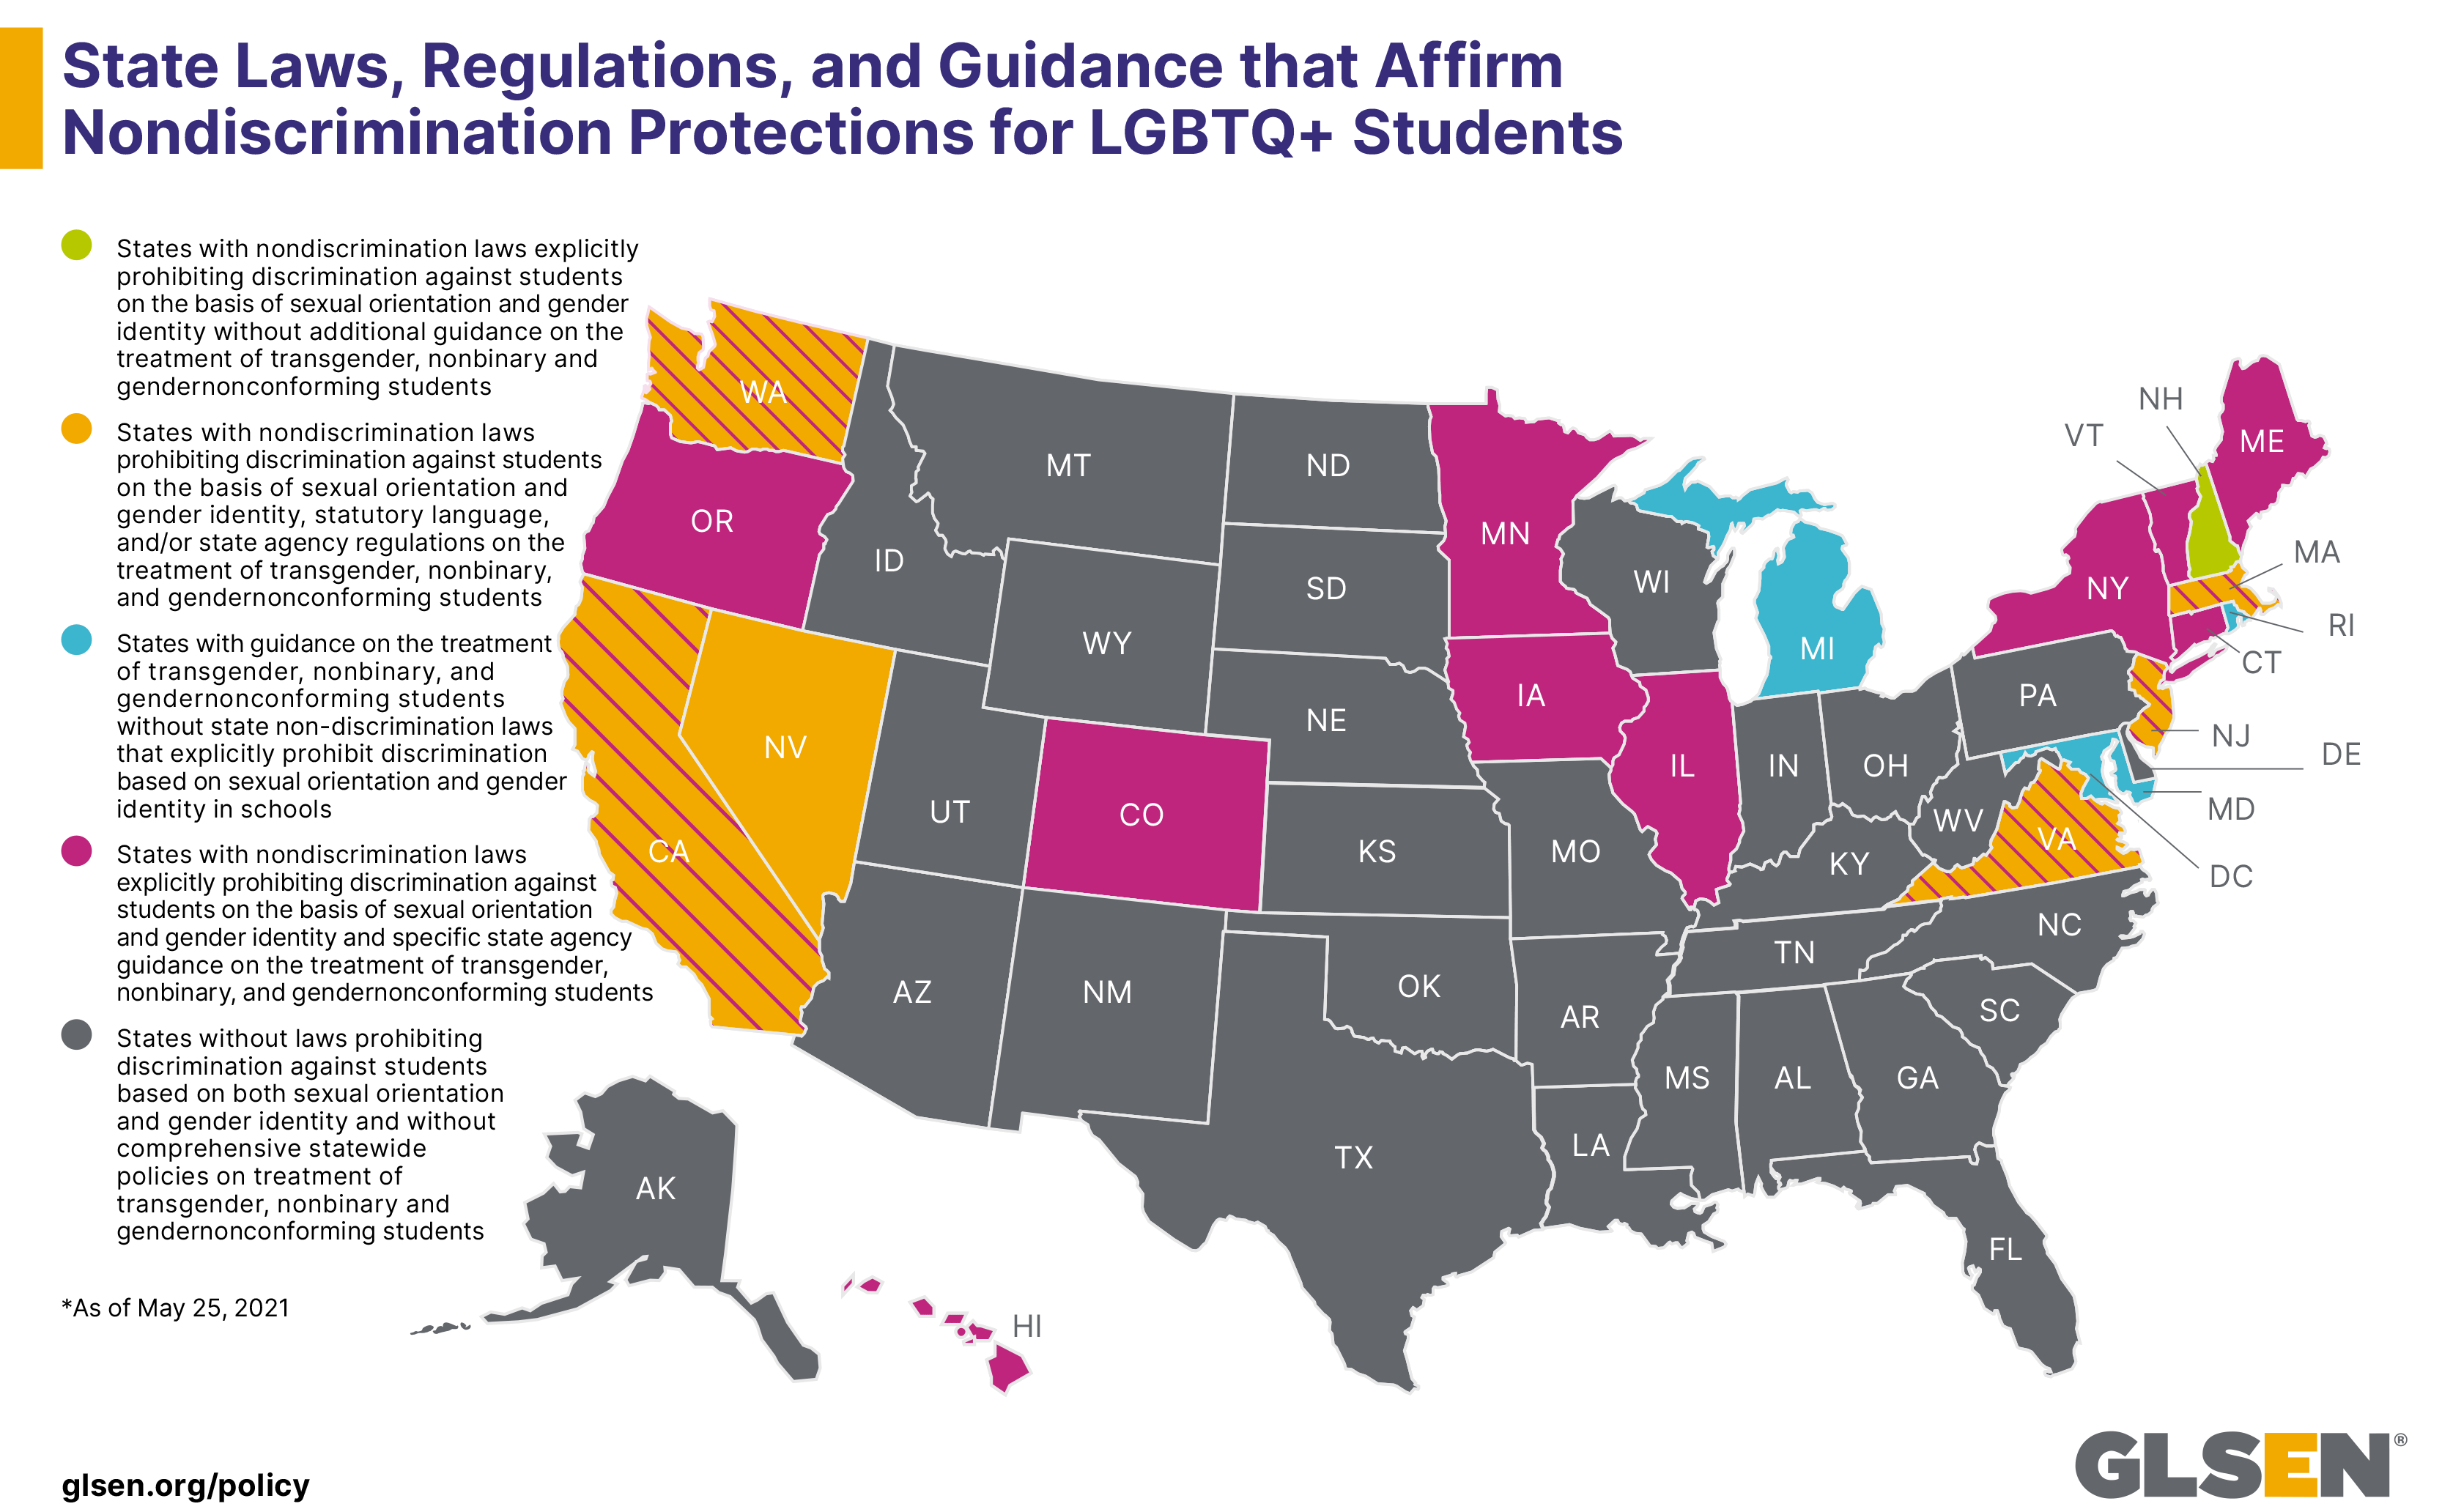 STATE LAWS, REGULATIONS, AND GUIDANCE THAT AFFIRM NONDISCRIMINATION PROTECTIONS FOR LGBTQ+ STUDENTS